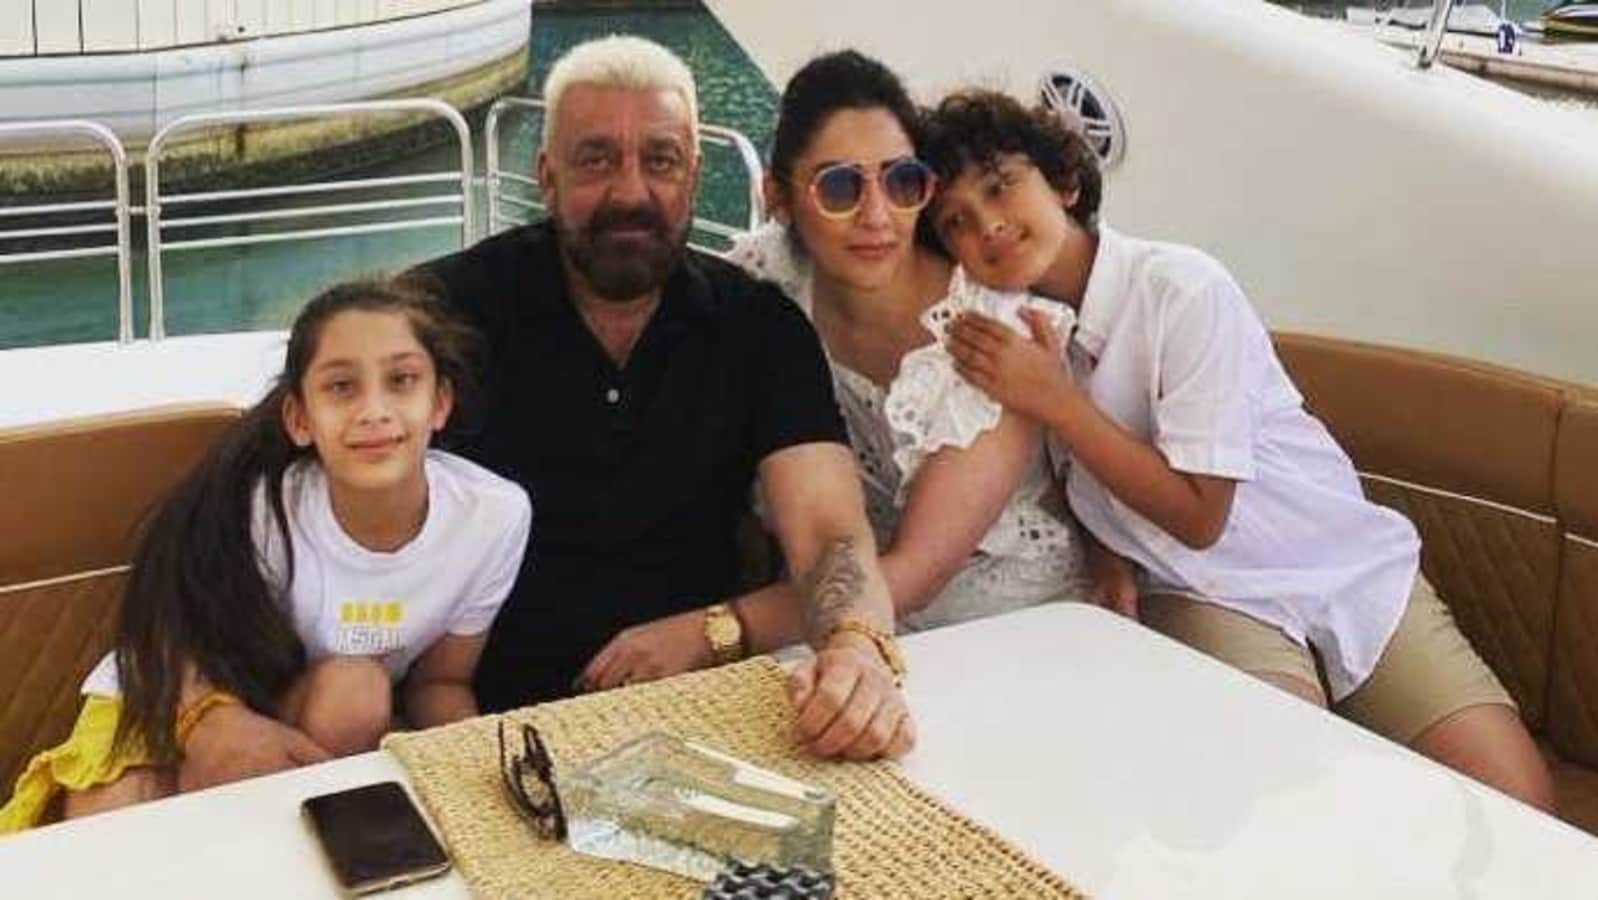 Sanjay Dutt shows off bleached hair in new family photo with Maanayata, twins Shahraan and Iqra - Hindustan Times